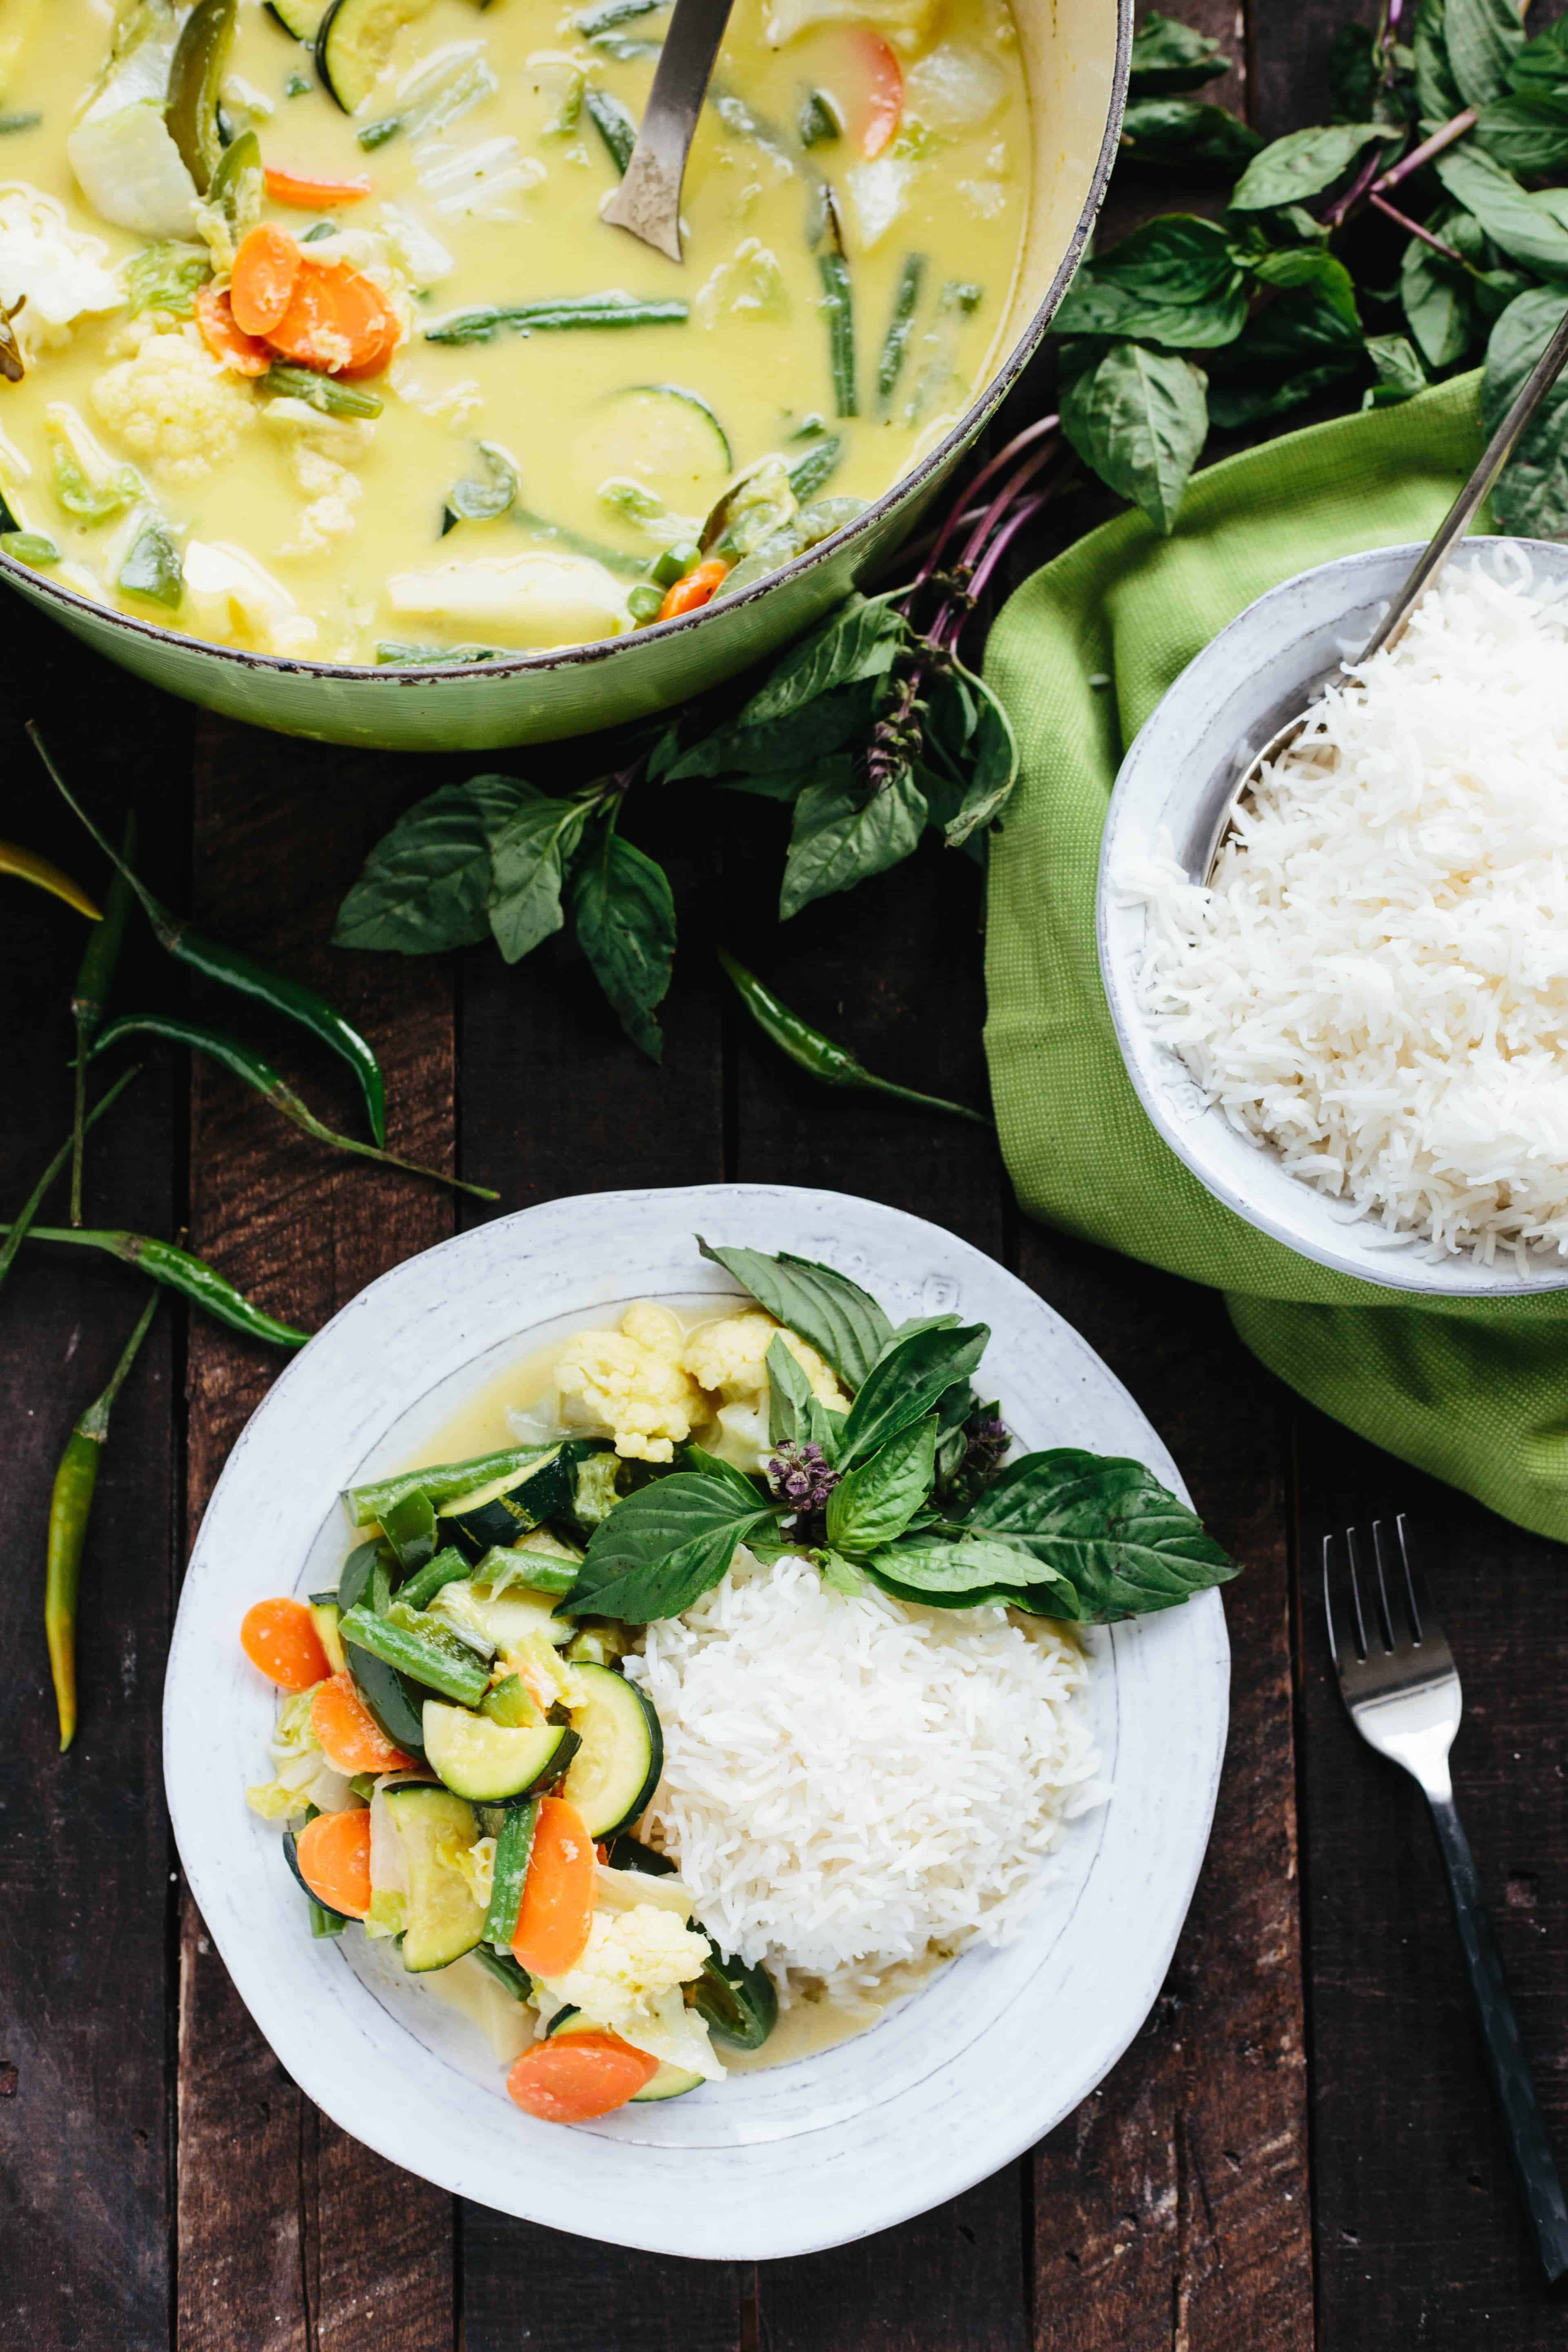 A table set with a large pot of curry, a bowl of rice, and a large helping of both on a white dinner plate.